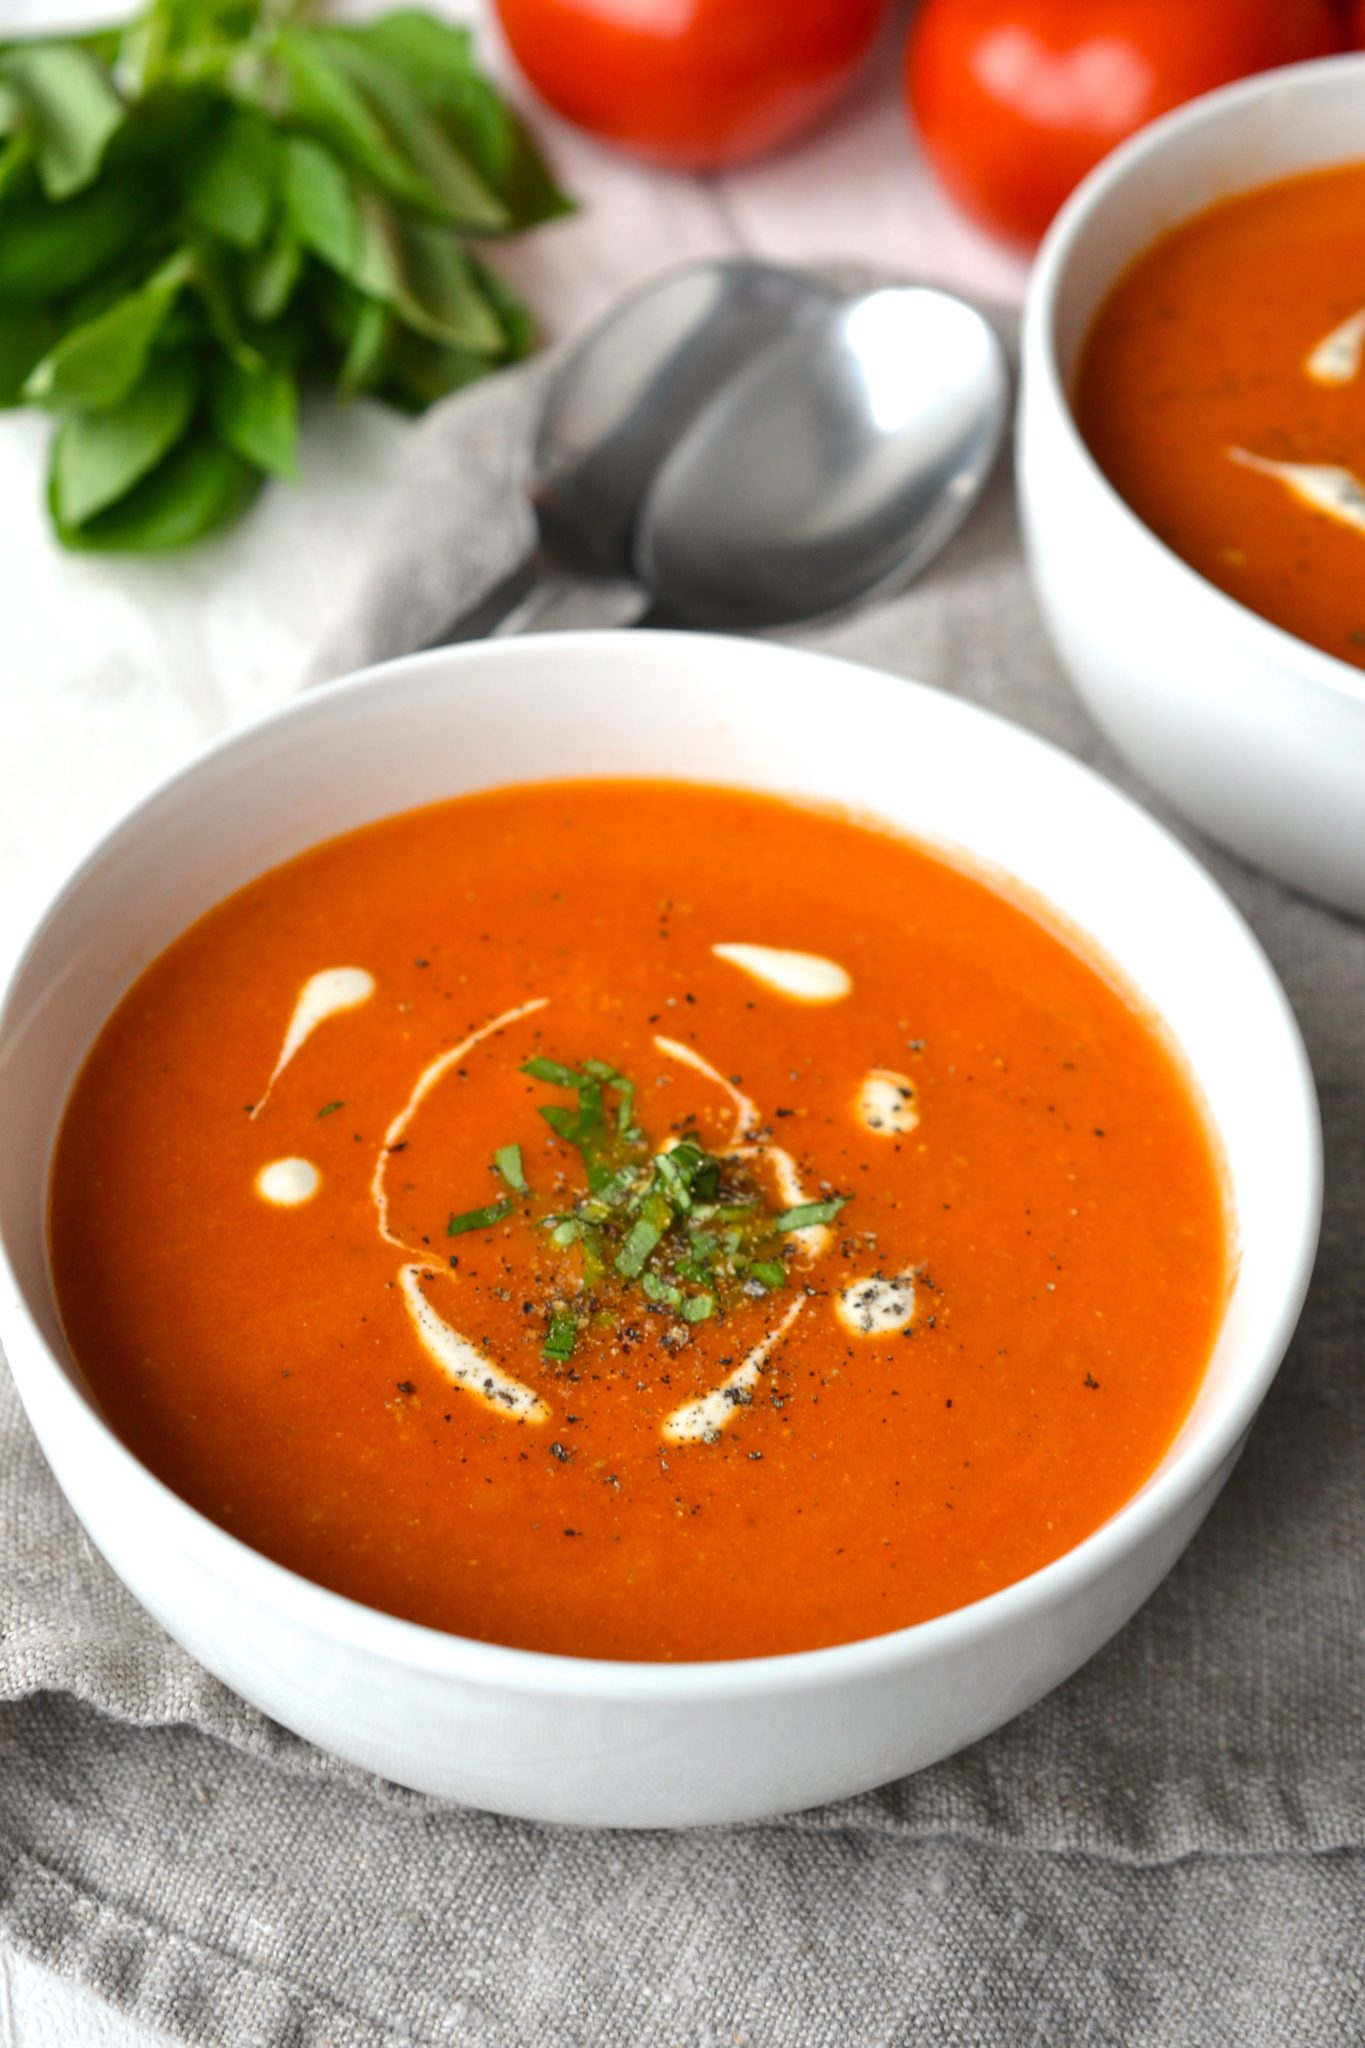 does south beach diet allow tomatoe soup